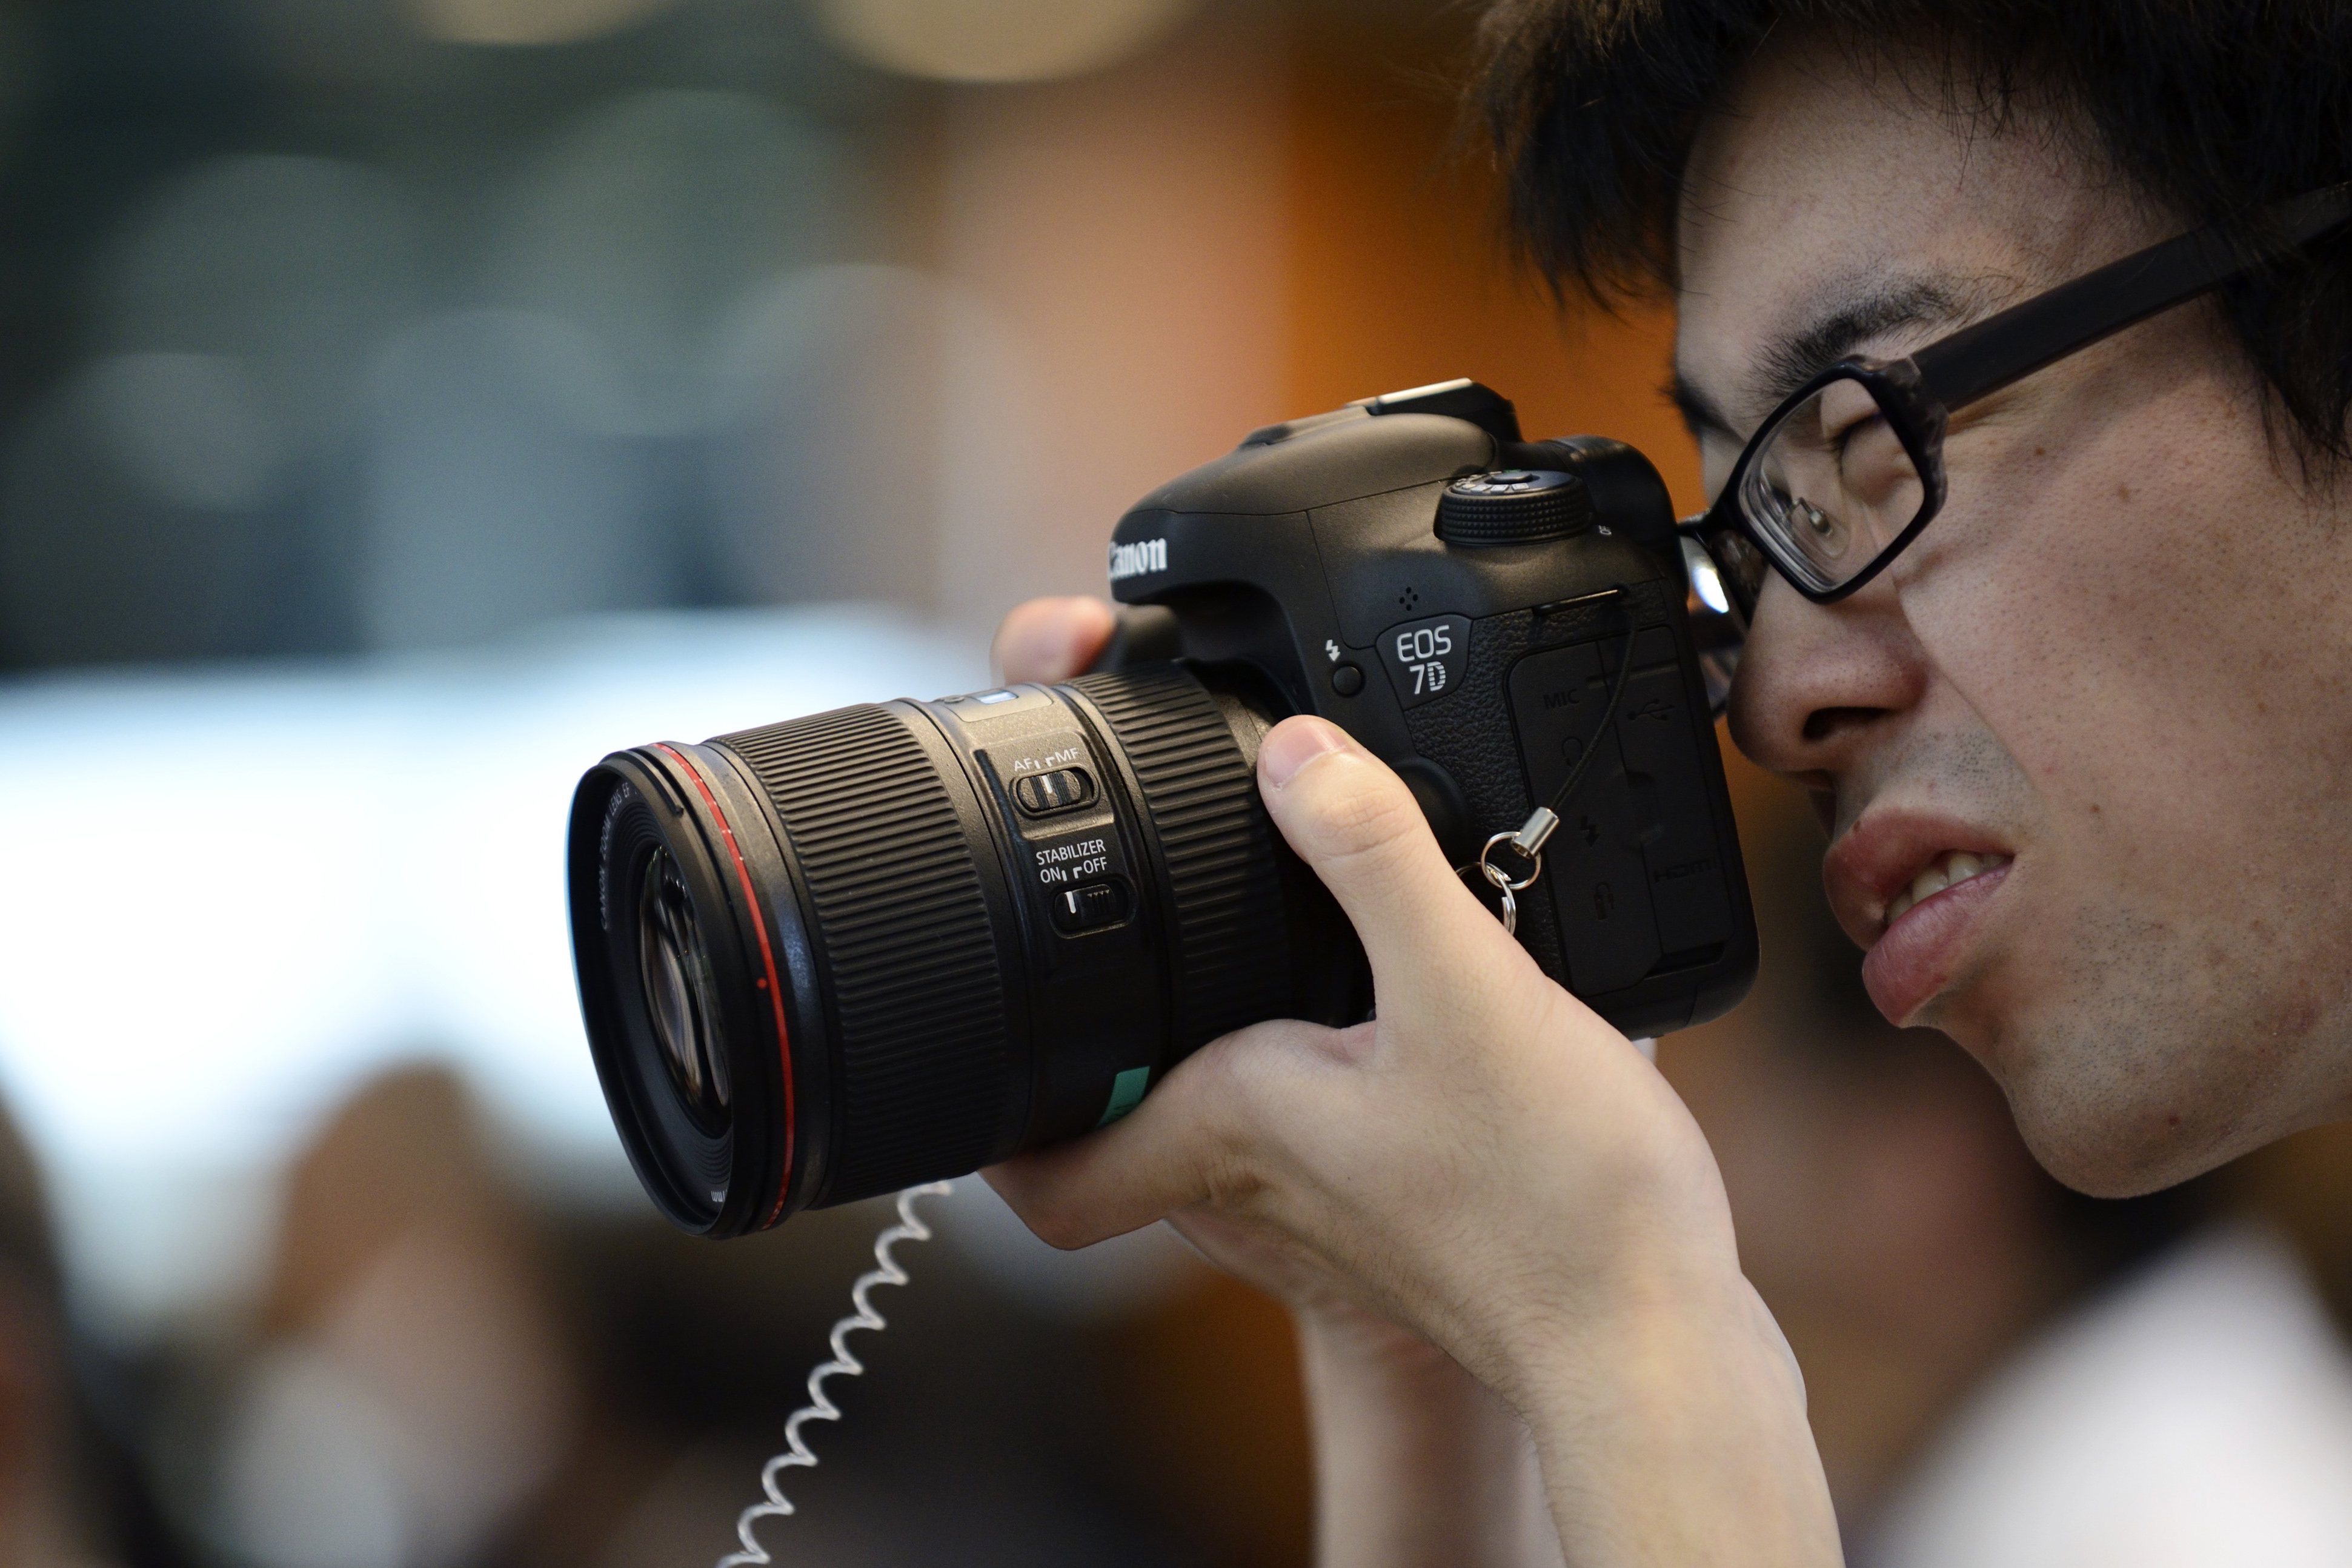 An attendee tries the Canon Inc. EOS 7D Mark II digital single lens reflex (DSLR) camera during its unveiling in Tokyo, Japan, on Tuesday, Sept. 16, 2014.